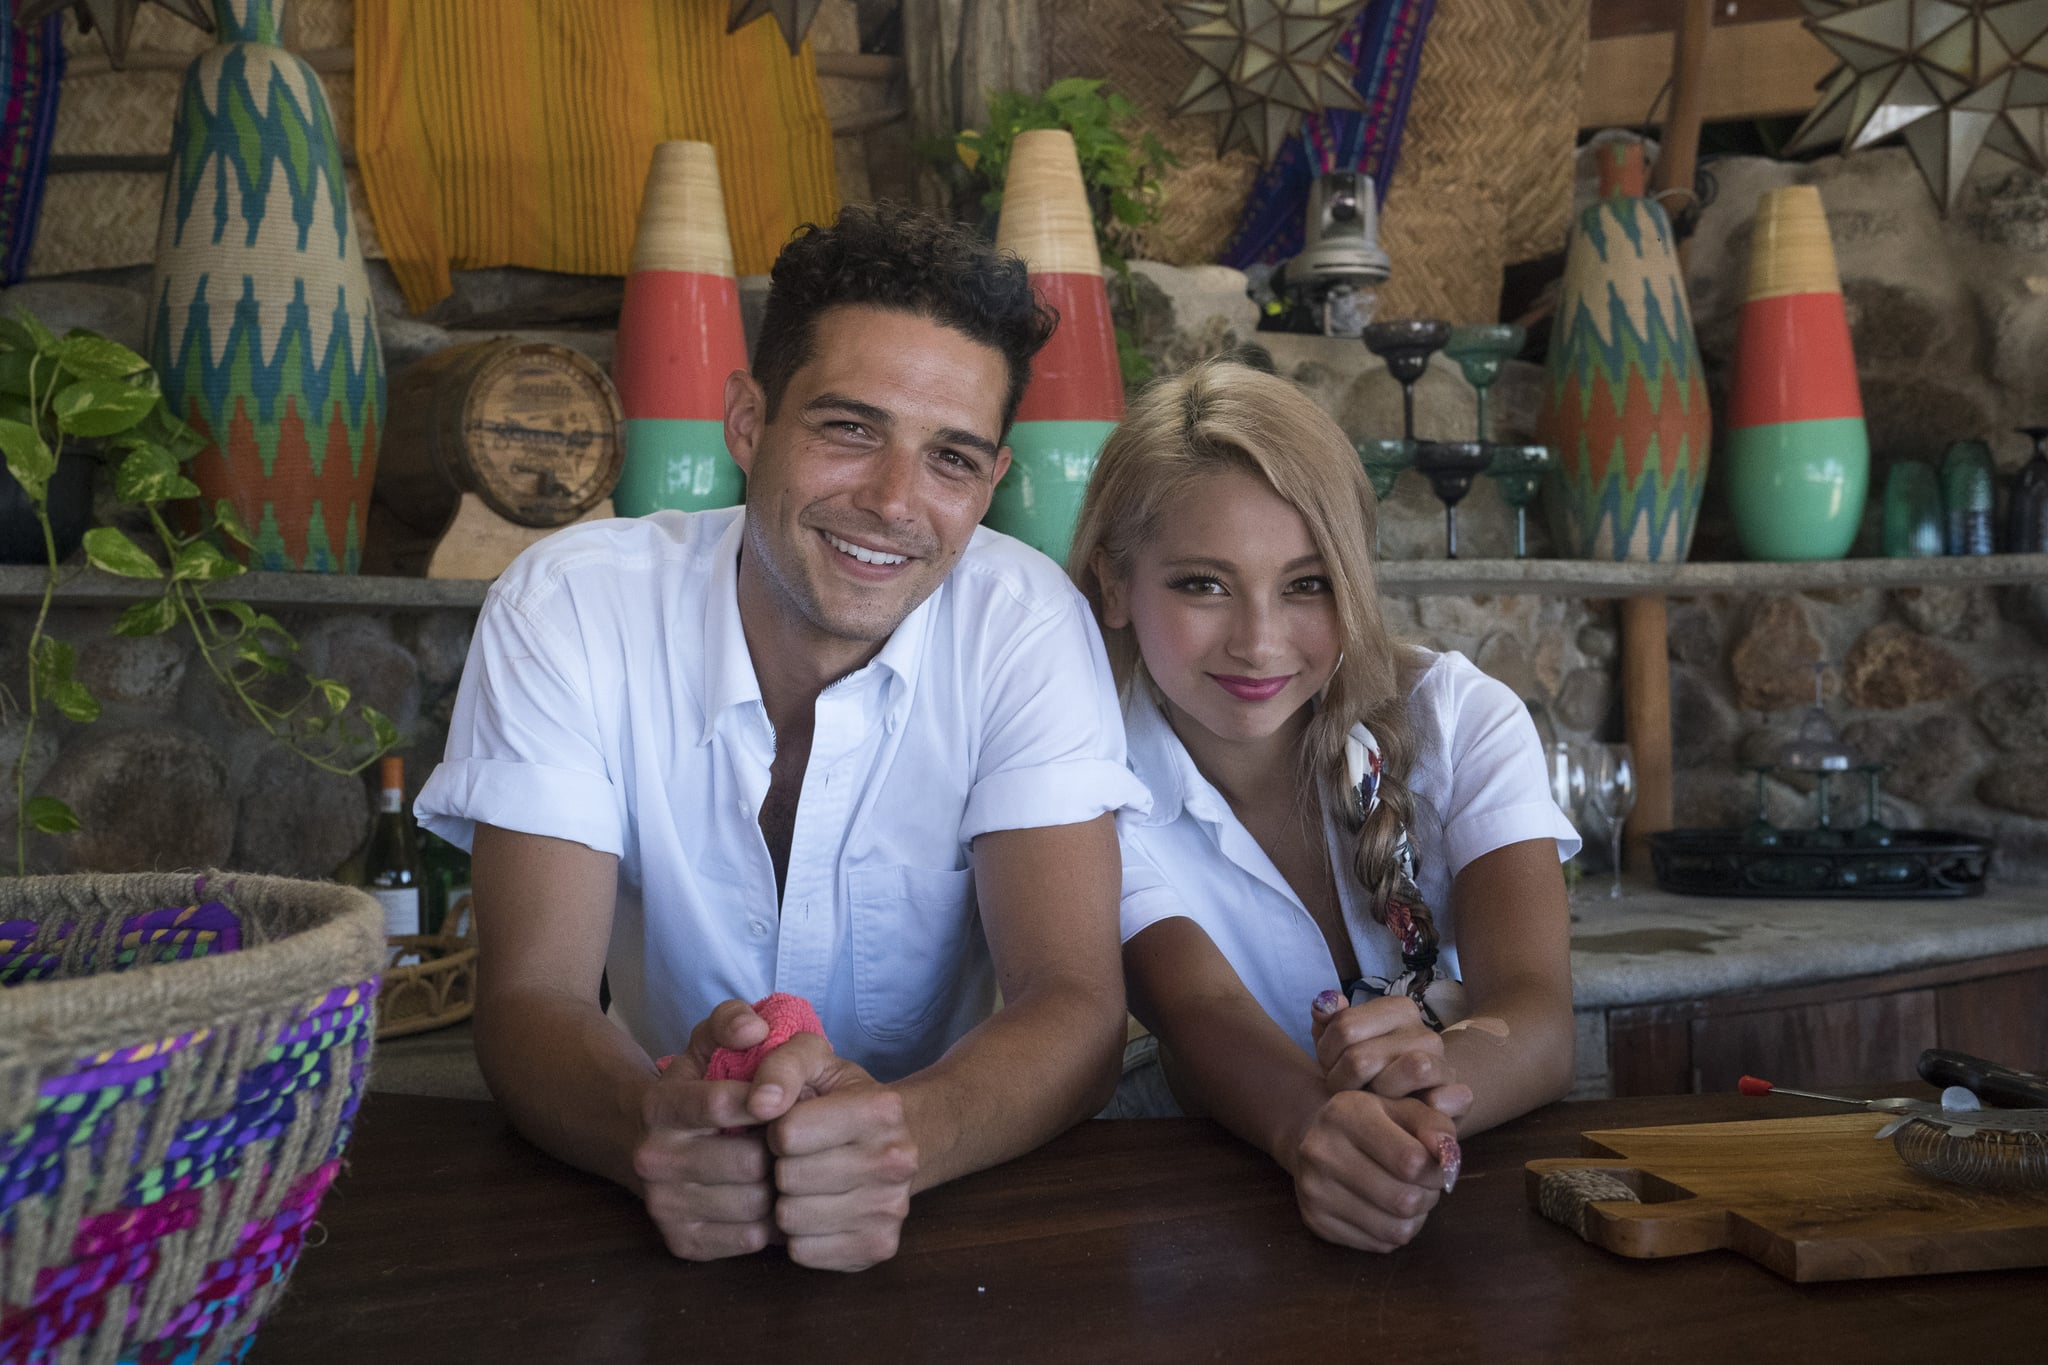 BACHELOR IN PARADISE - Summer lovin is sure to happen fast as the hit series Bachelor in Paradise returns for season five TUESDAY, AUG. 7 (8:00-10:00 p.m. EDT), on The ABC Television Network. (ABC/Paul Hebert)WELLS, YUKI